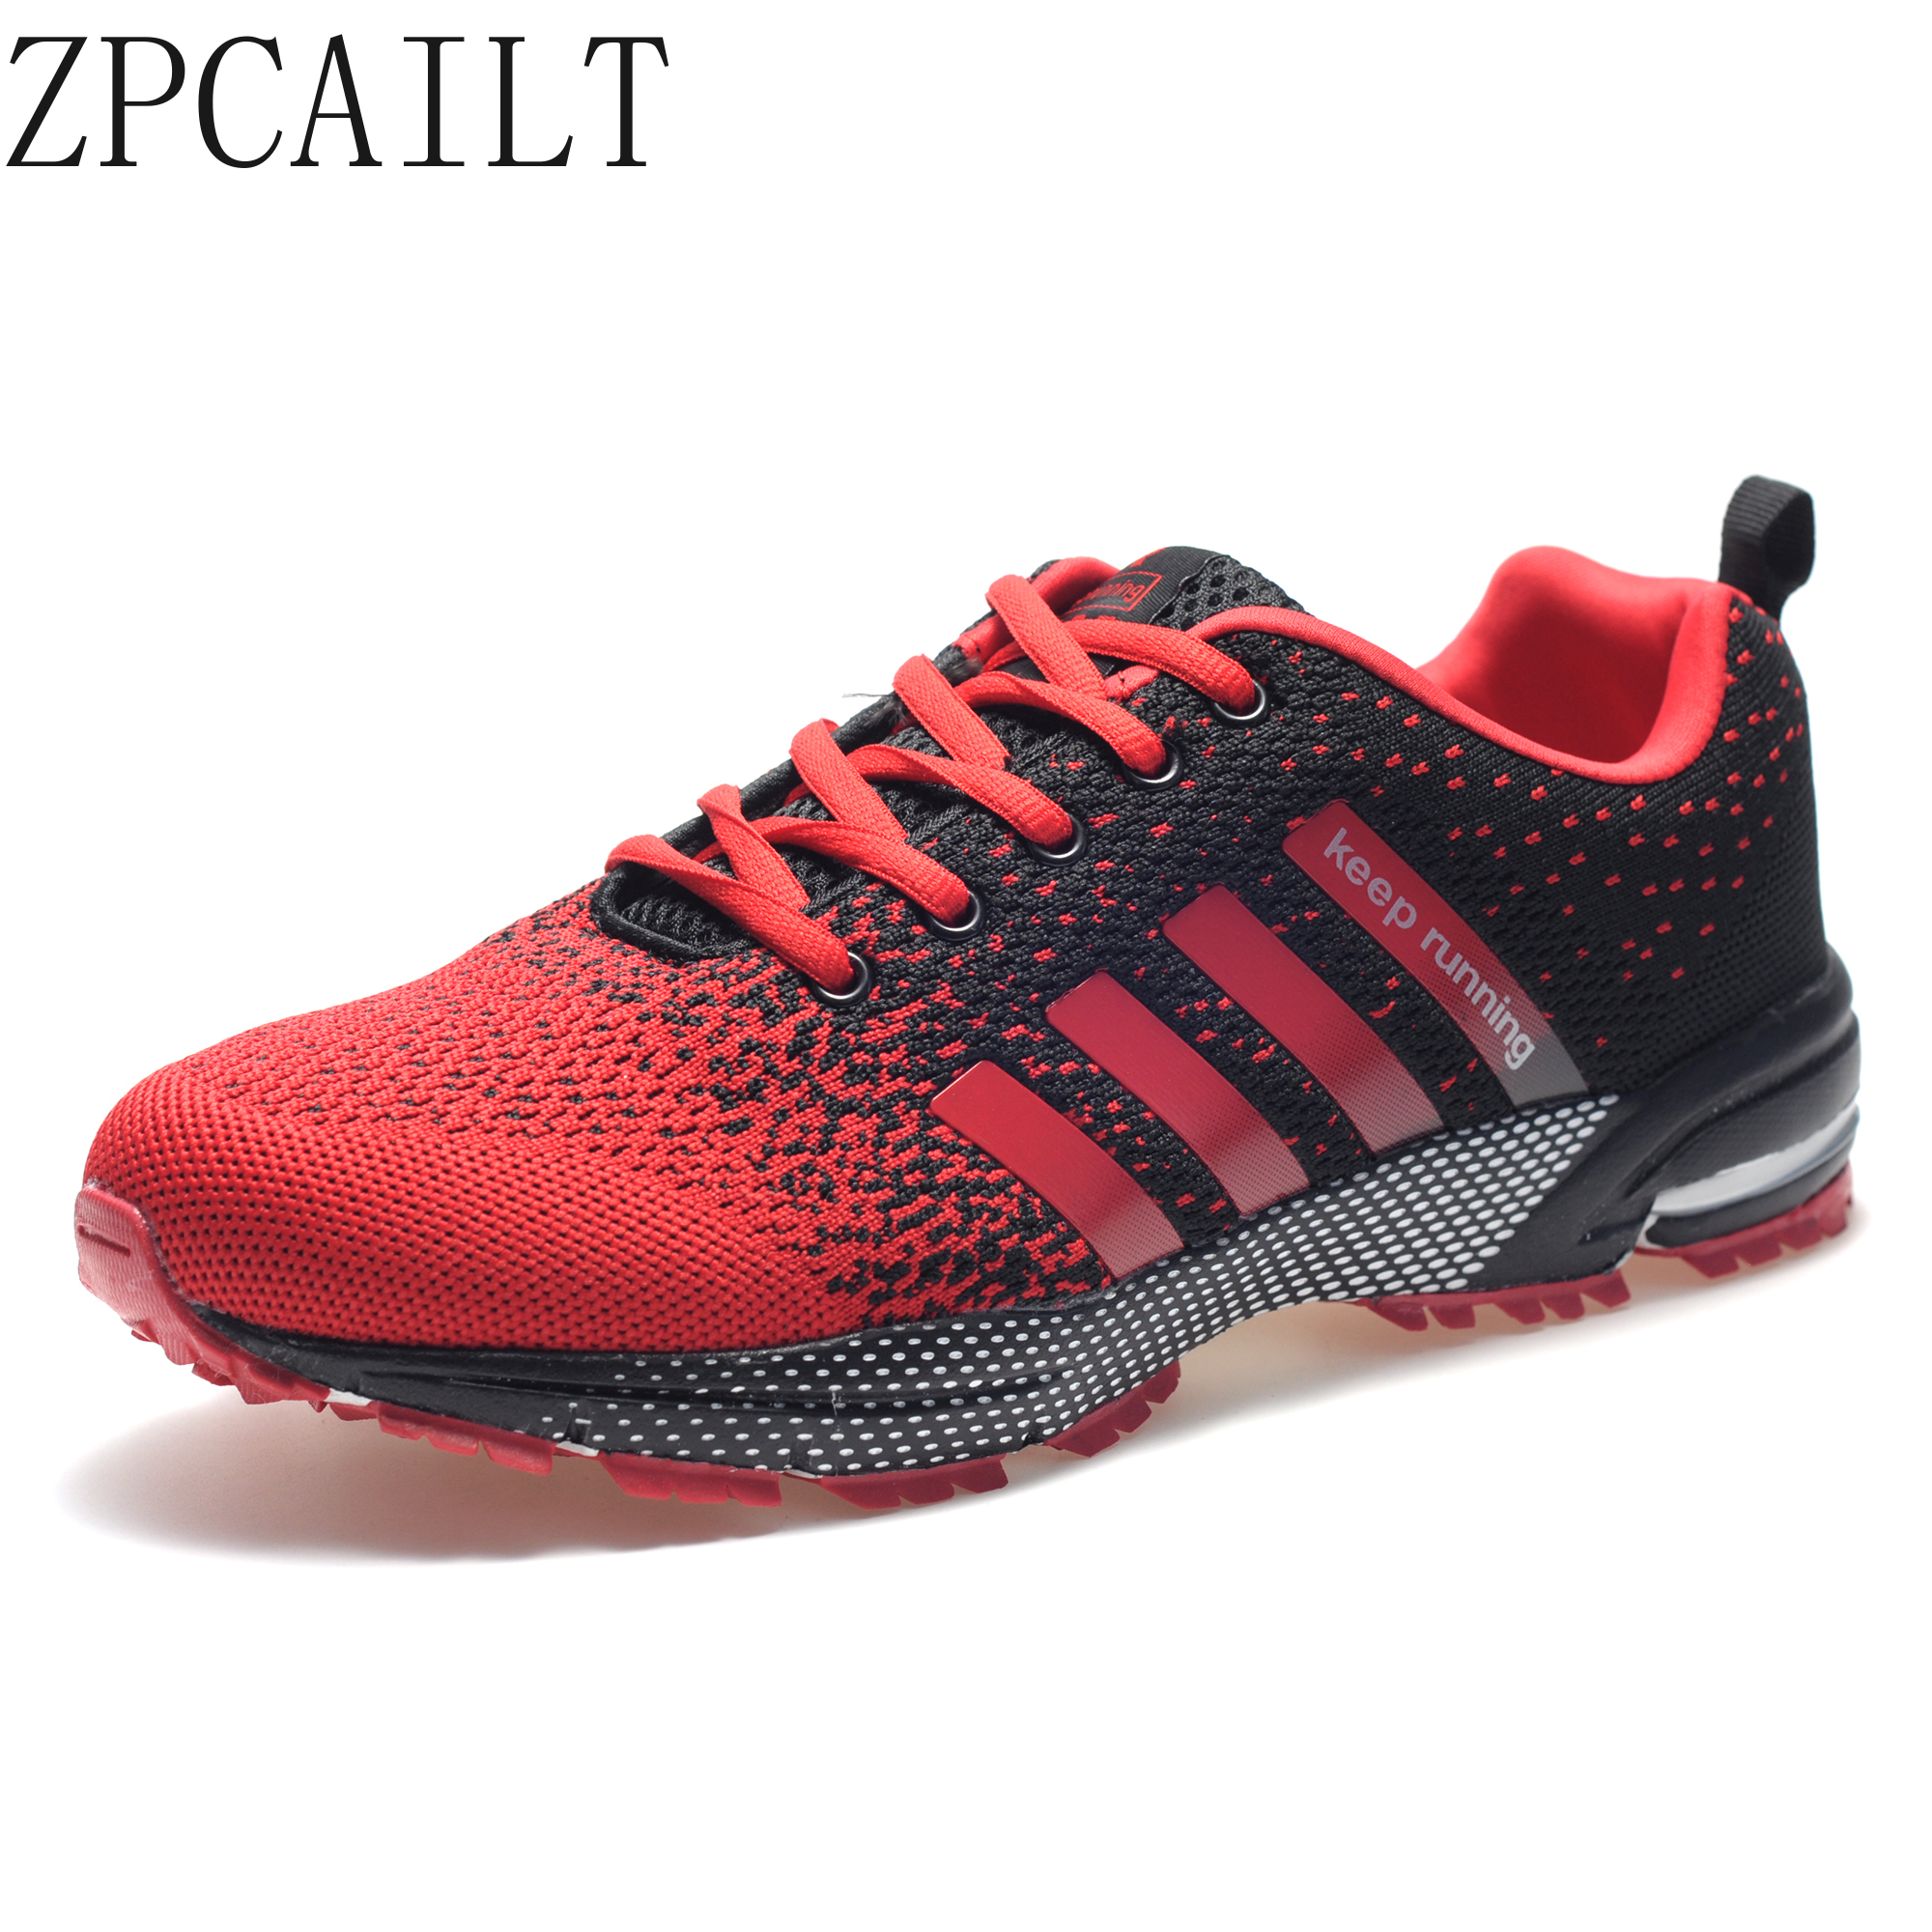 Men/'s Cloth Shoes Breathable Flat Sport Sneakers Athletic Running Walk SX28